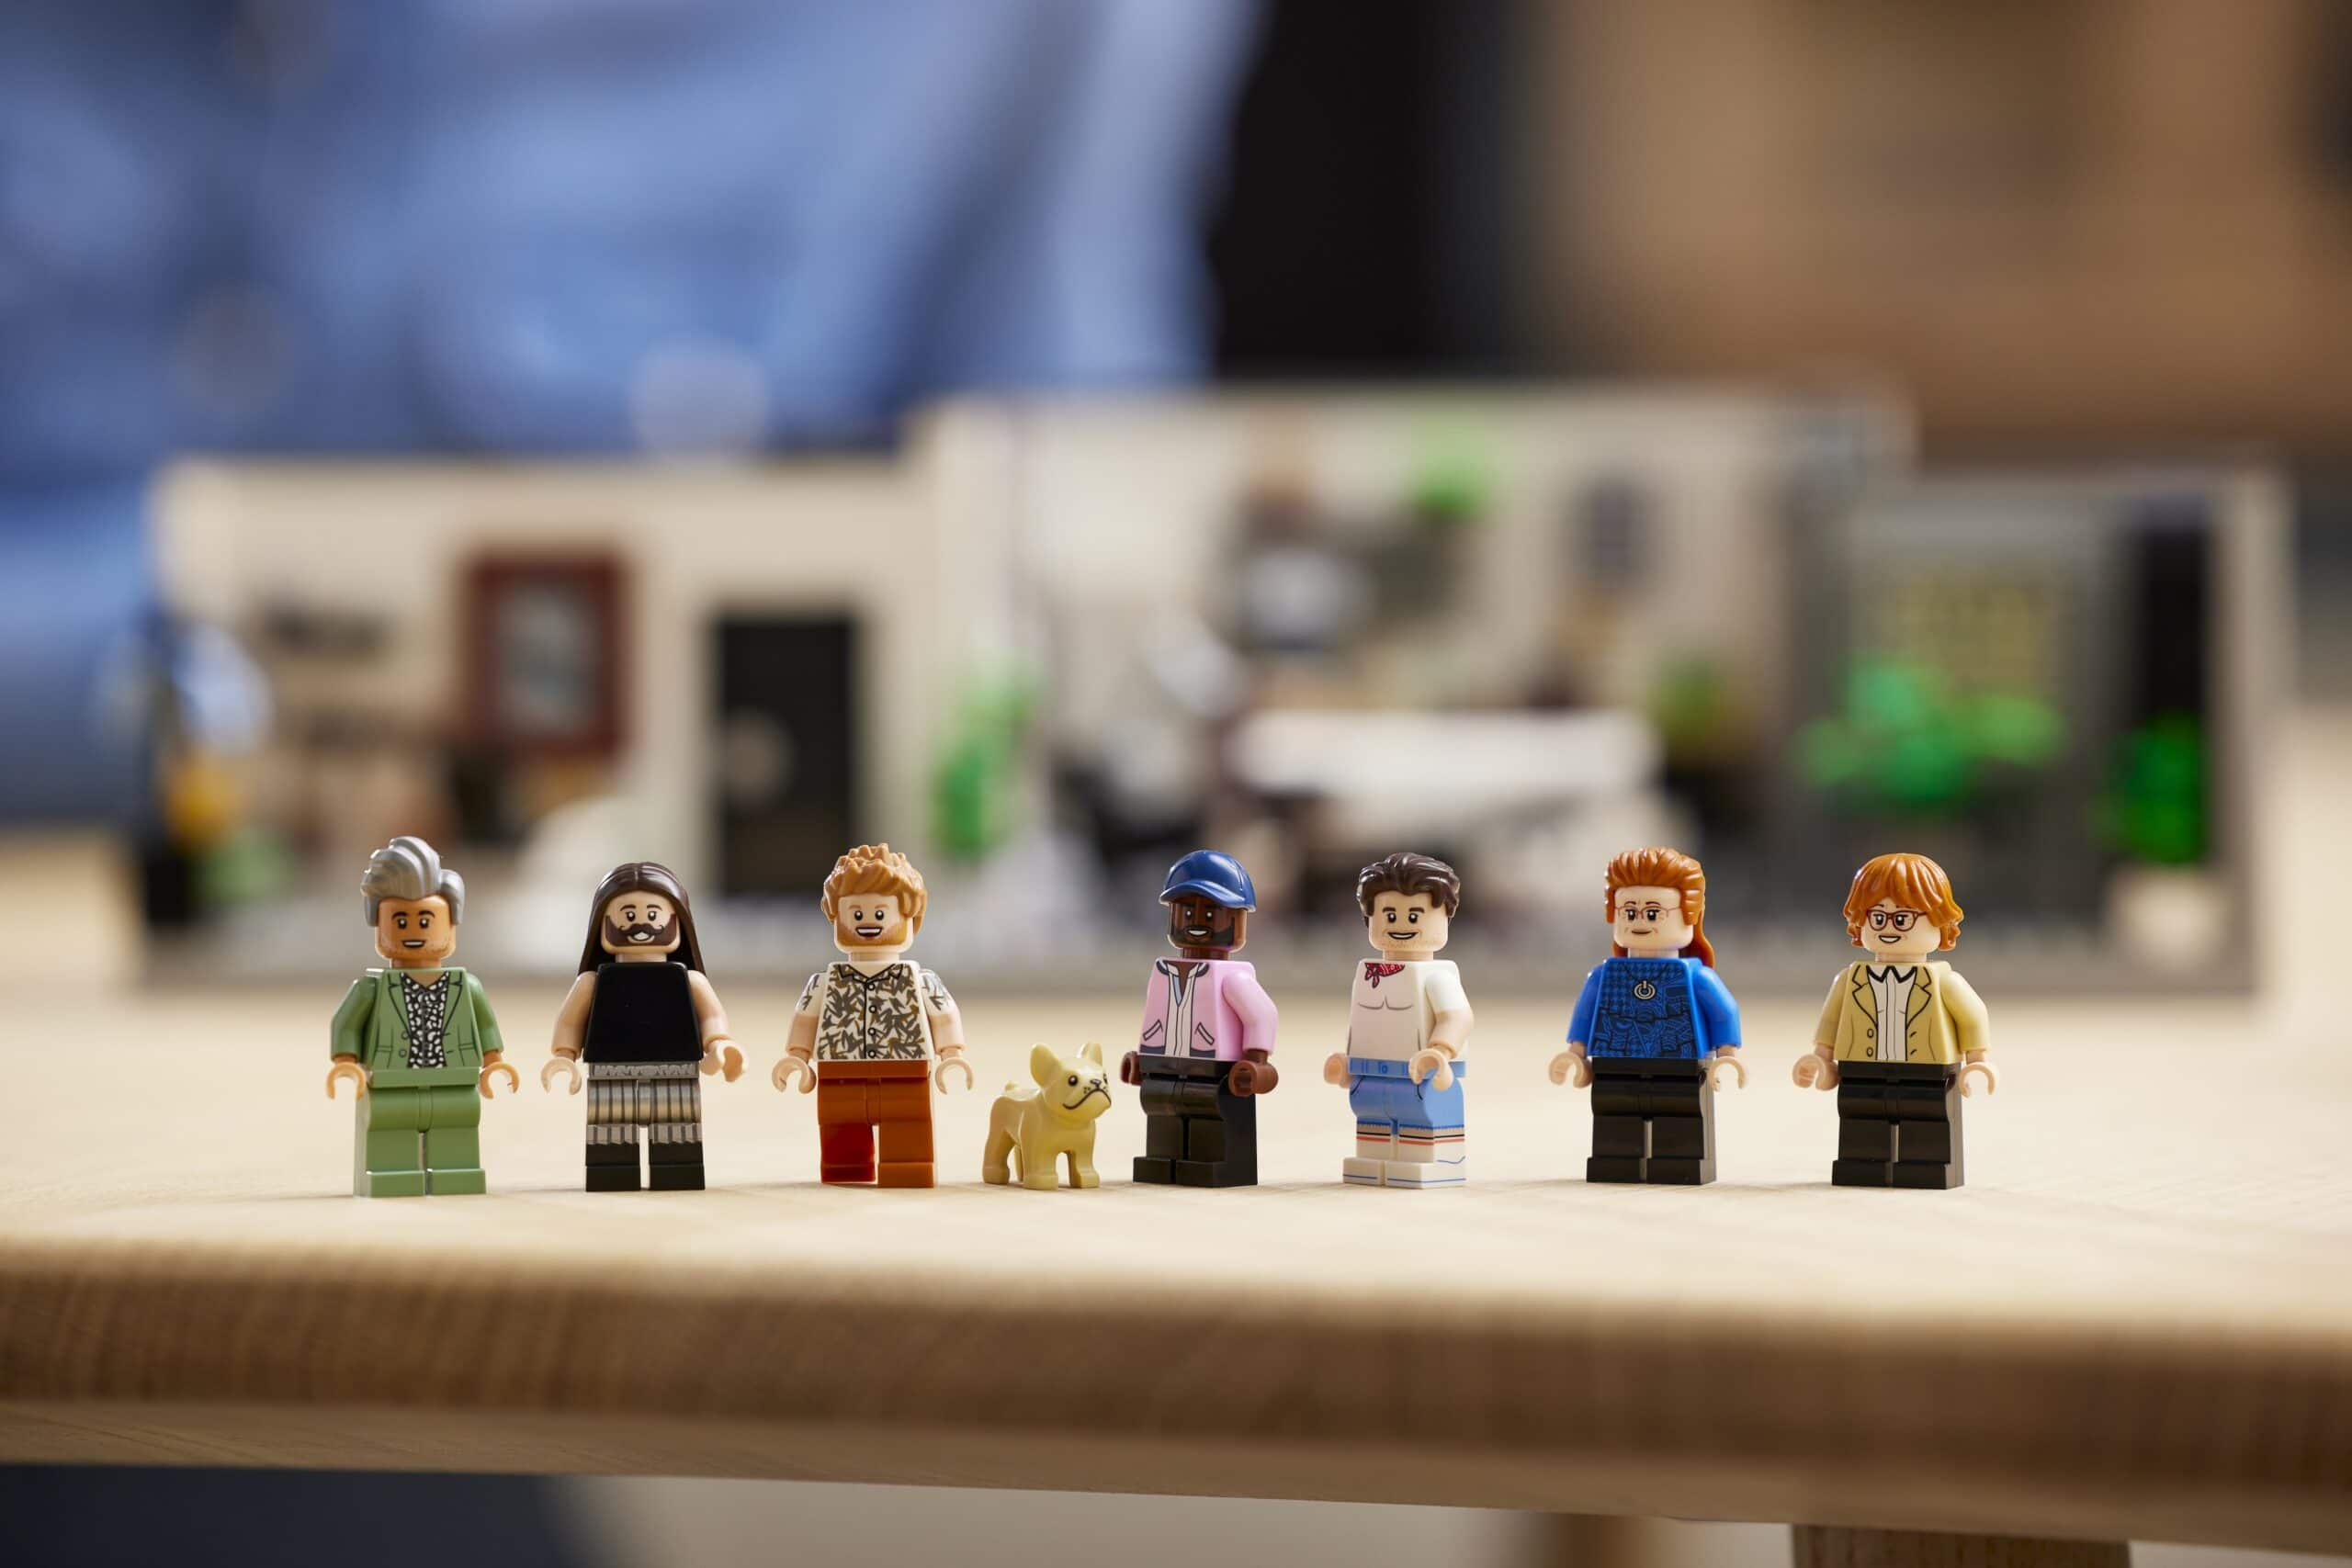 LEGO and Queer Eye create a brick model of the Fab 5 Loft 25